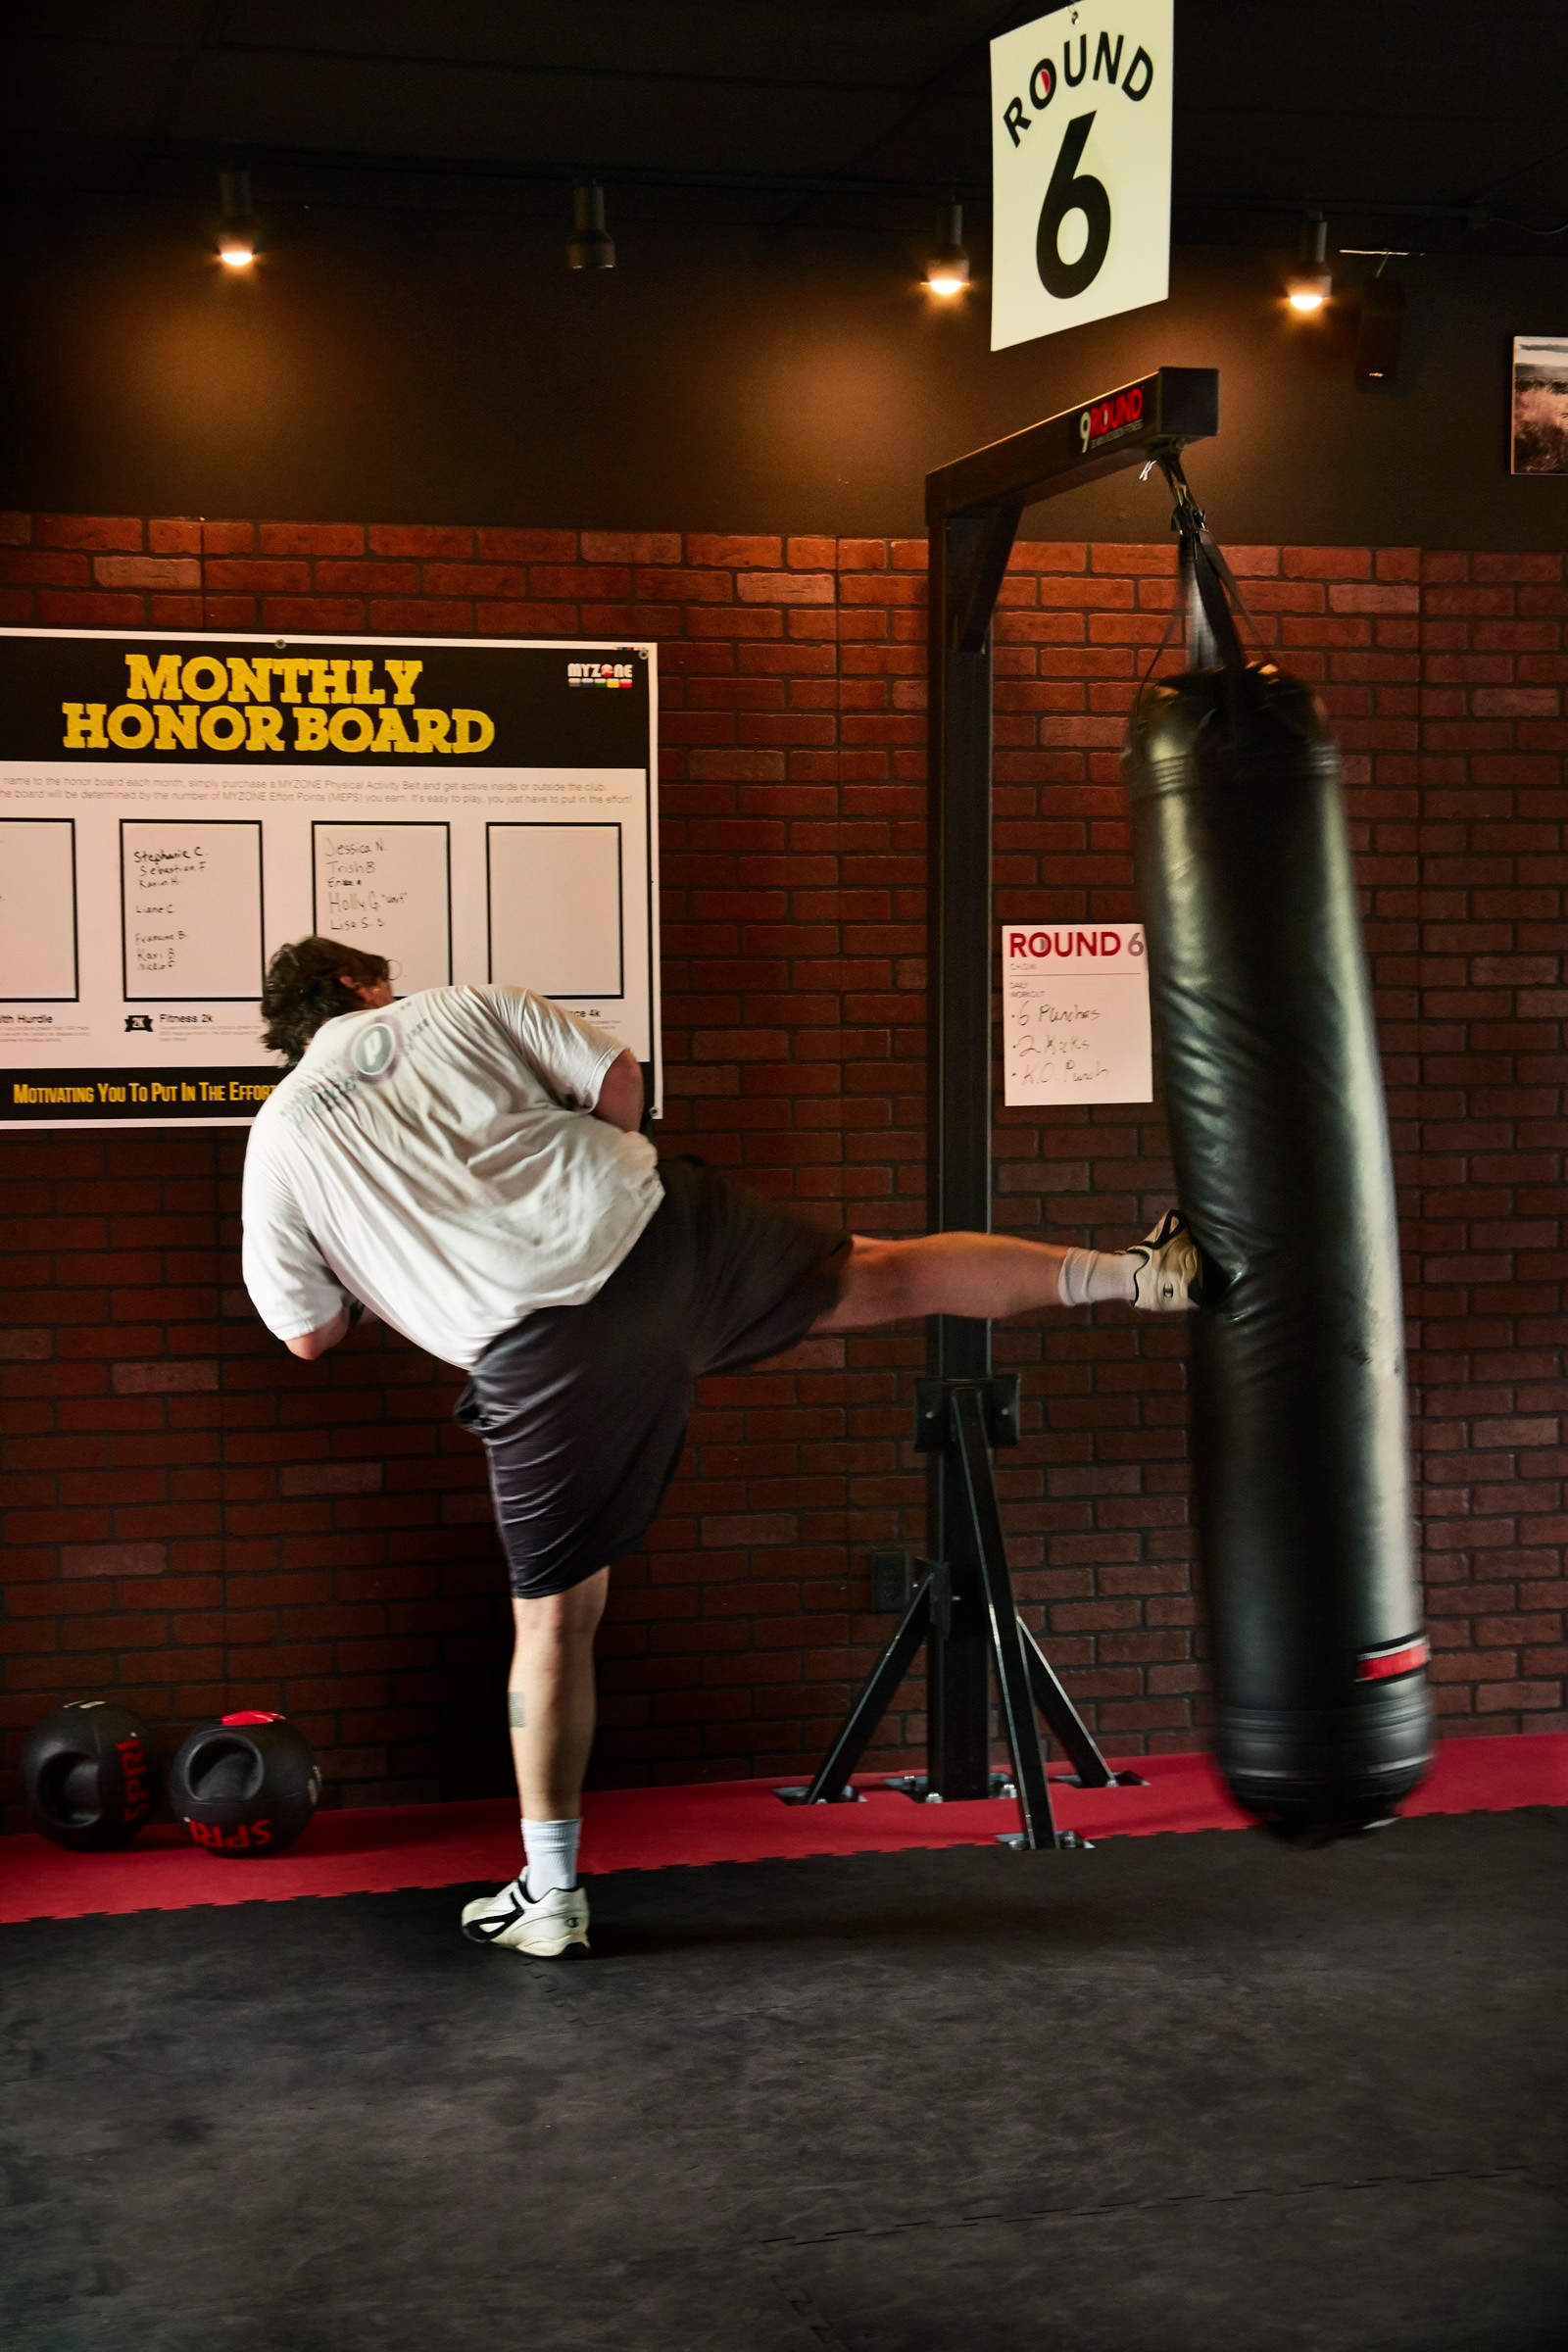 9Round Kickbox Fitness Louisville CO image 6